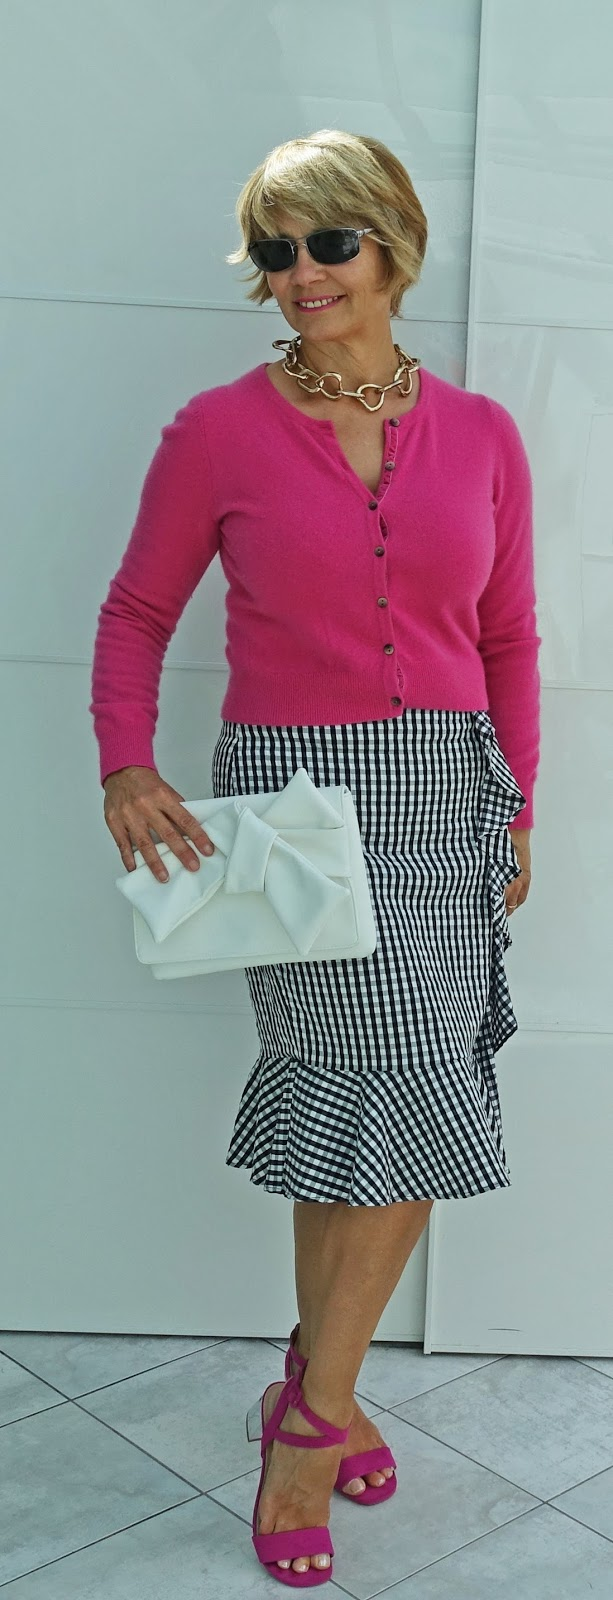 Black and white gingham goes with anything, and fuchsia pink is always a striking colour to choose. Pair it with a white clutch and block heeled pink sandals.